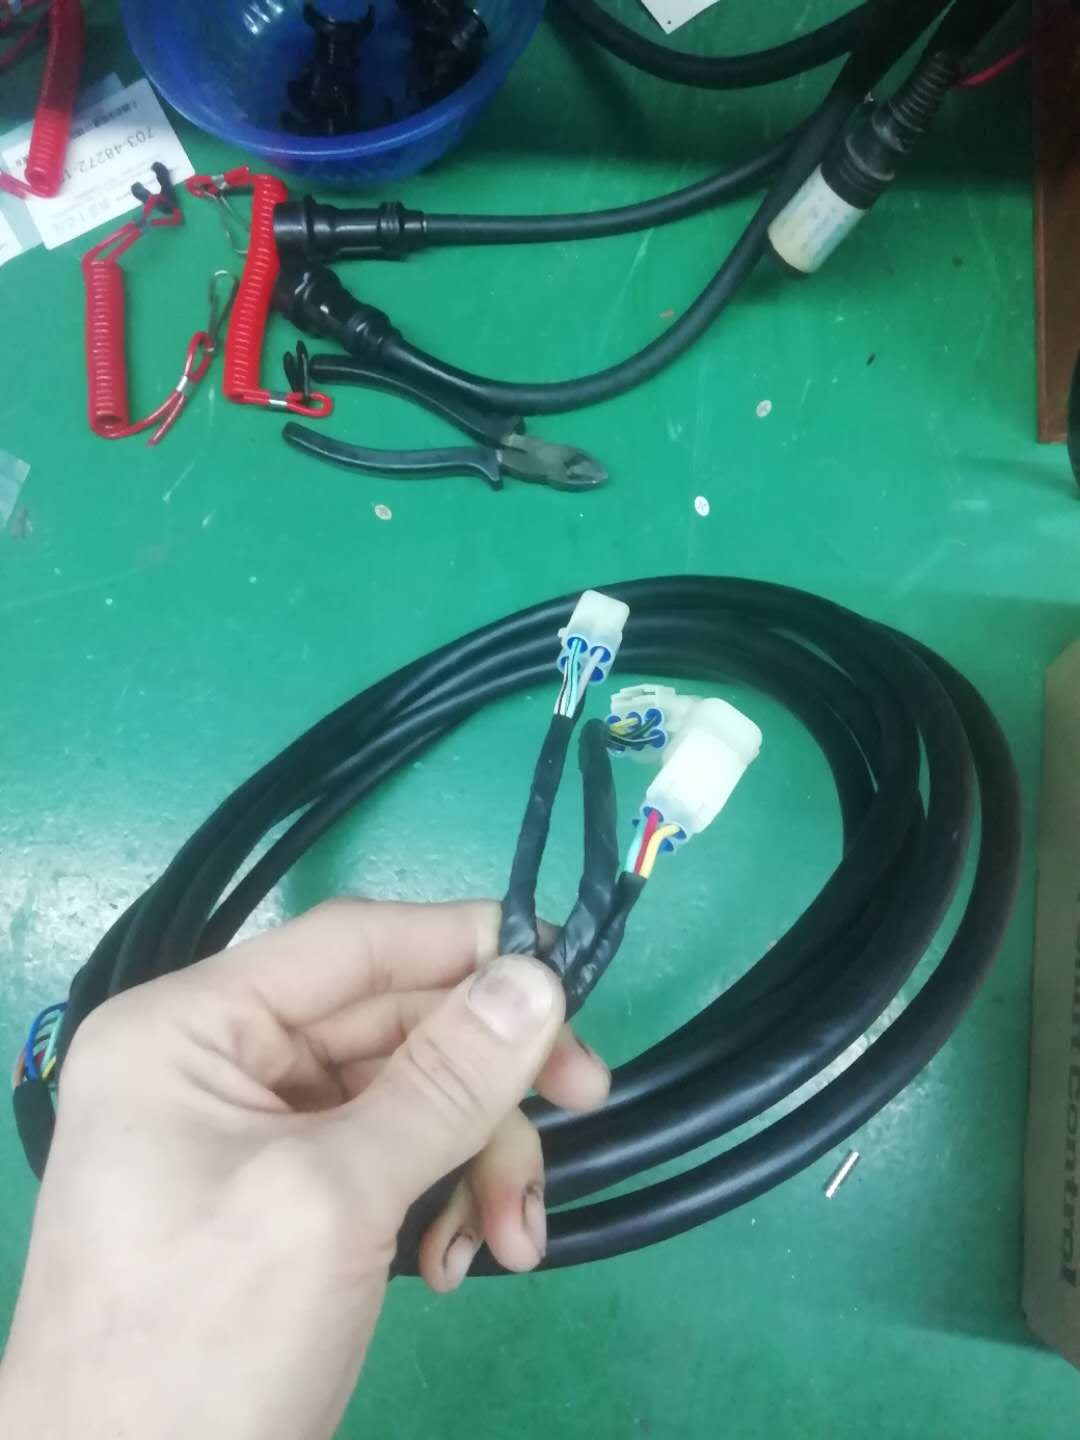 US $78.0 |32580 ZW1 V01 Main Wiring Harness 16.5FT for Honda Outboard on marine wiring harness, honda generator wiring harness, evinrude etec wiring harness, honda motorcycle wiring harness, honda outboard tach wiring, honda element wiring harness, mercury outboard wiring harness, outboard motor wiring harness, force outboard wiring harness, honda trailer wiring harness, honda engine wiring harness, honda outboard wiring color code, mercruiser wiring harness, suzuki wiring harness, yamaha wiring harness,